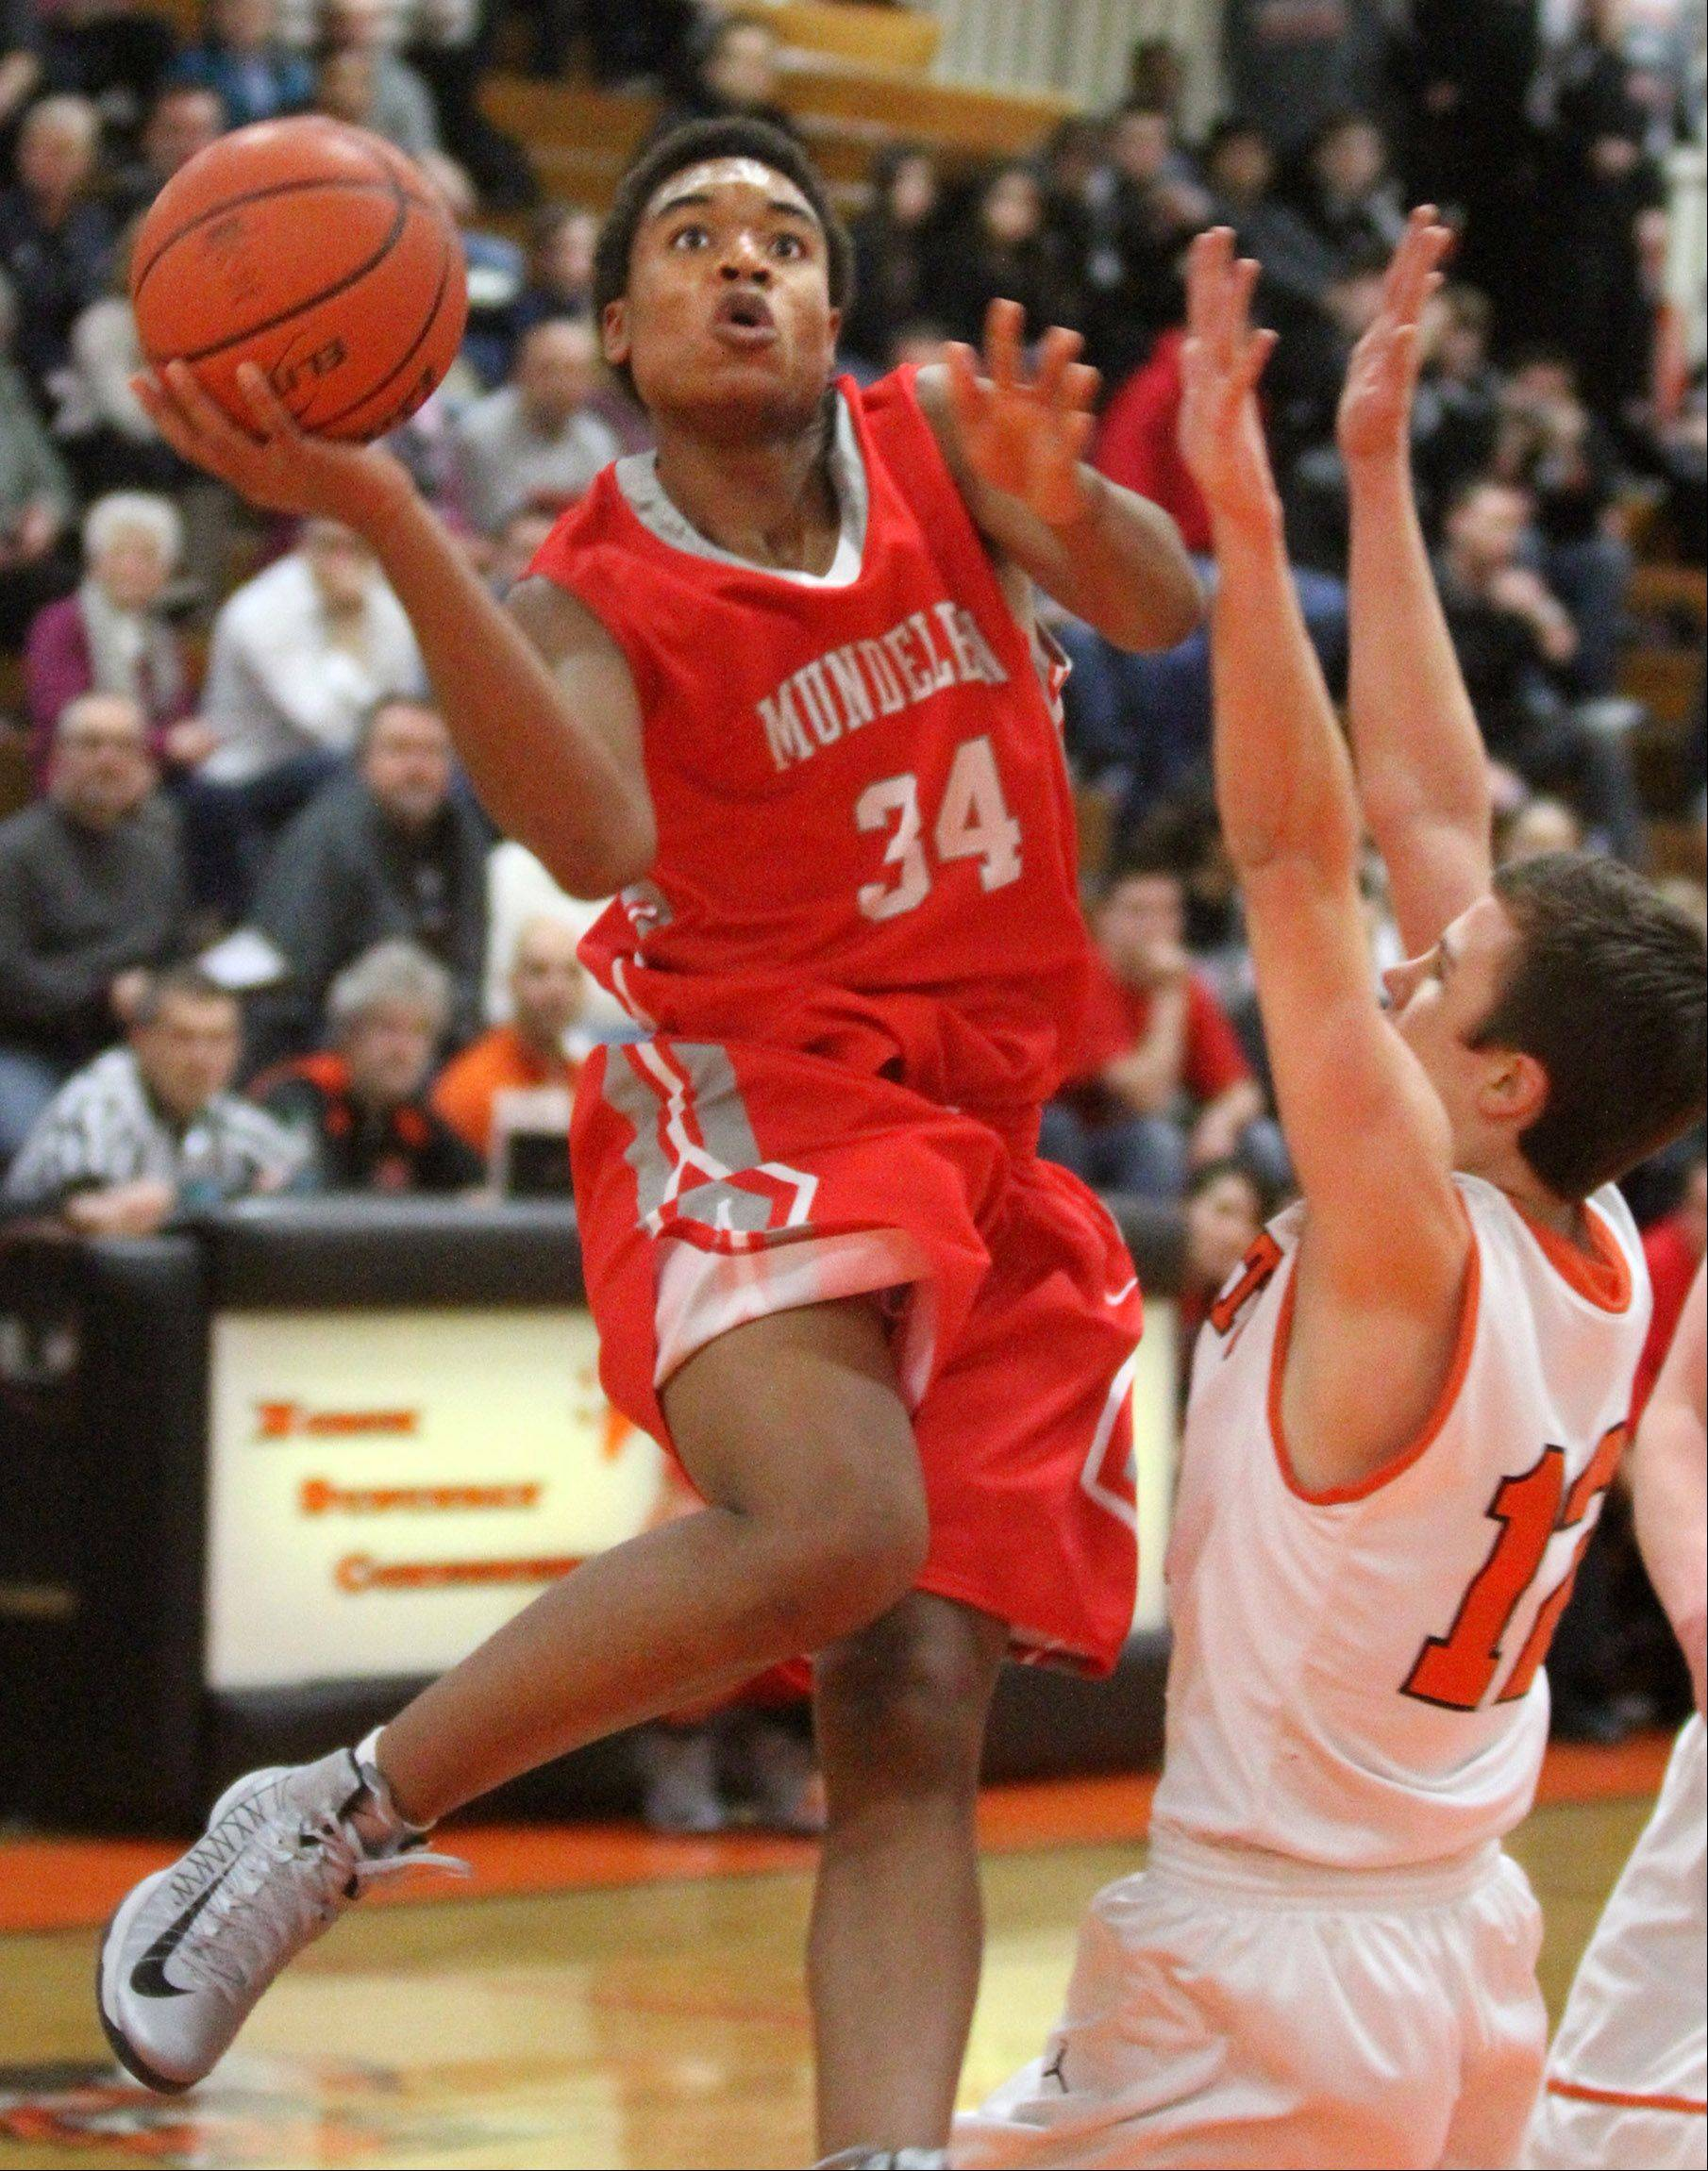 Mundelein's Cliff Dunigan shoots around Libertyville defender Nick Carlucci at Libertyville on Friday.